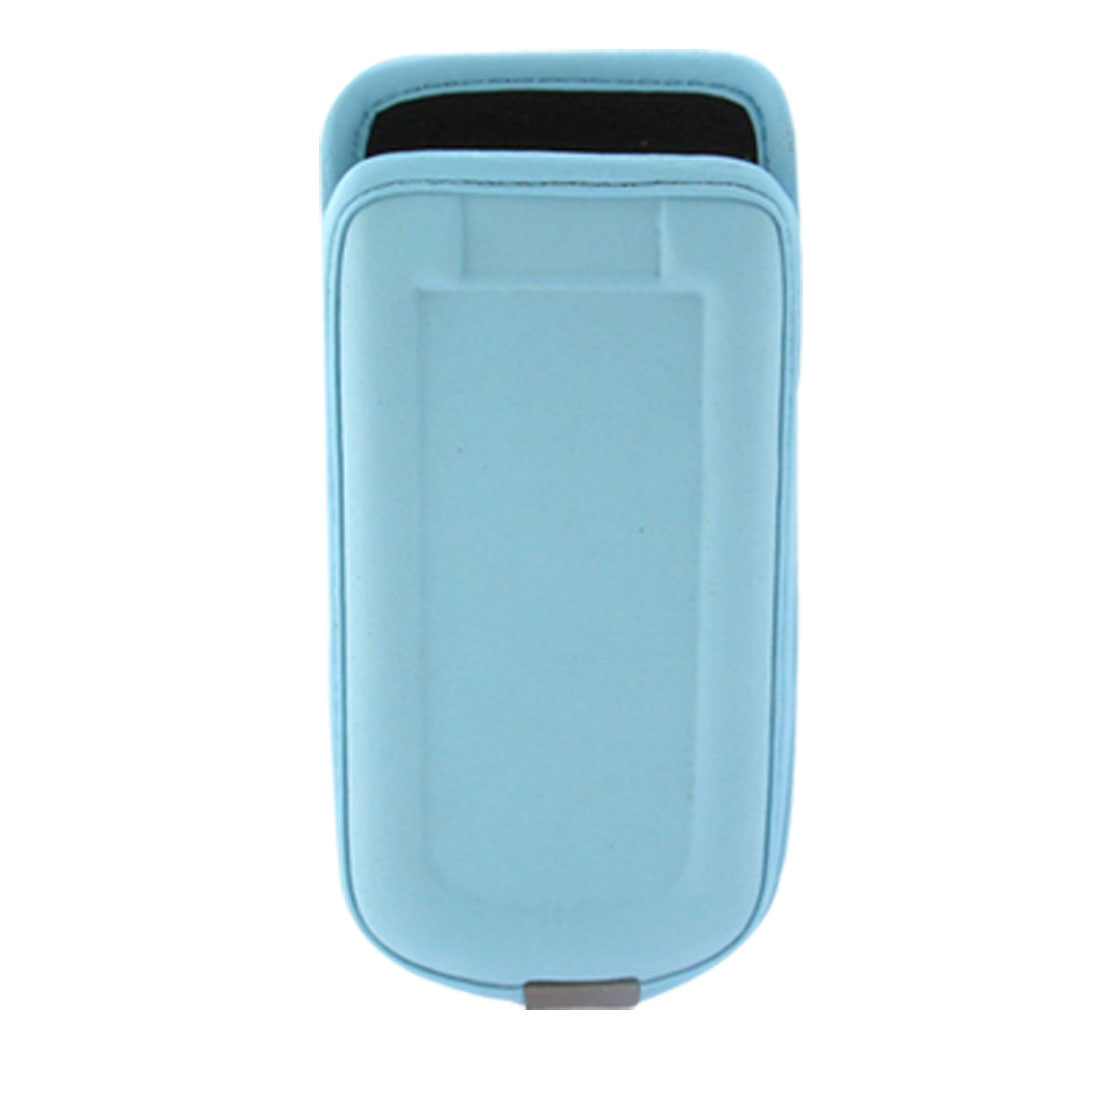 Exclusive Leather Pouch Holder with Belt Clip for Motorola L7 - Light Blue